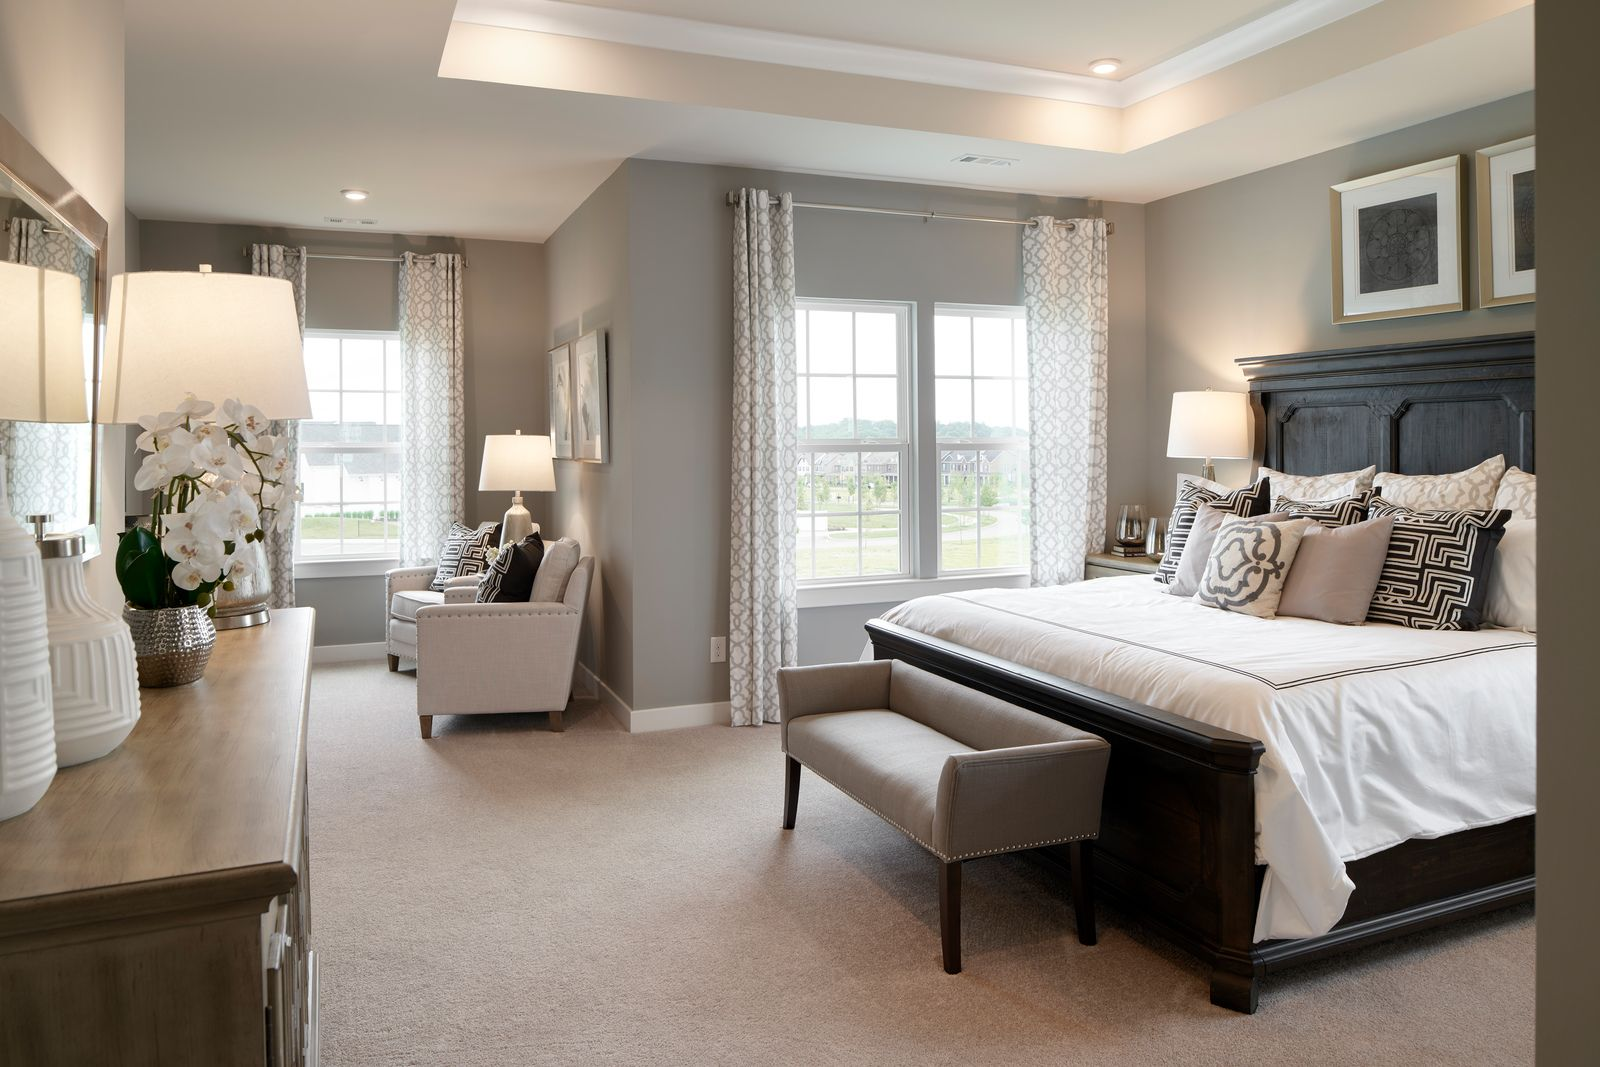 Bedroom featured in the Mitchell By Ryan Homes in Baltimore, MD